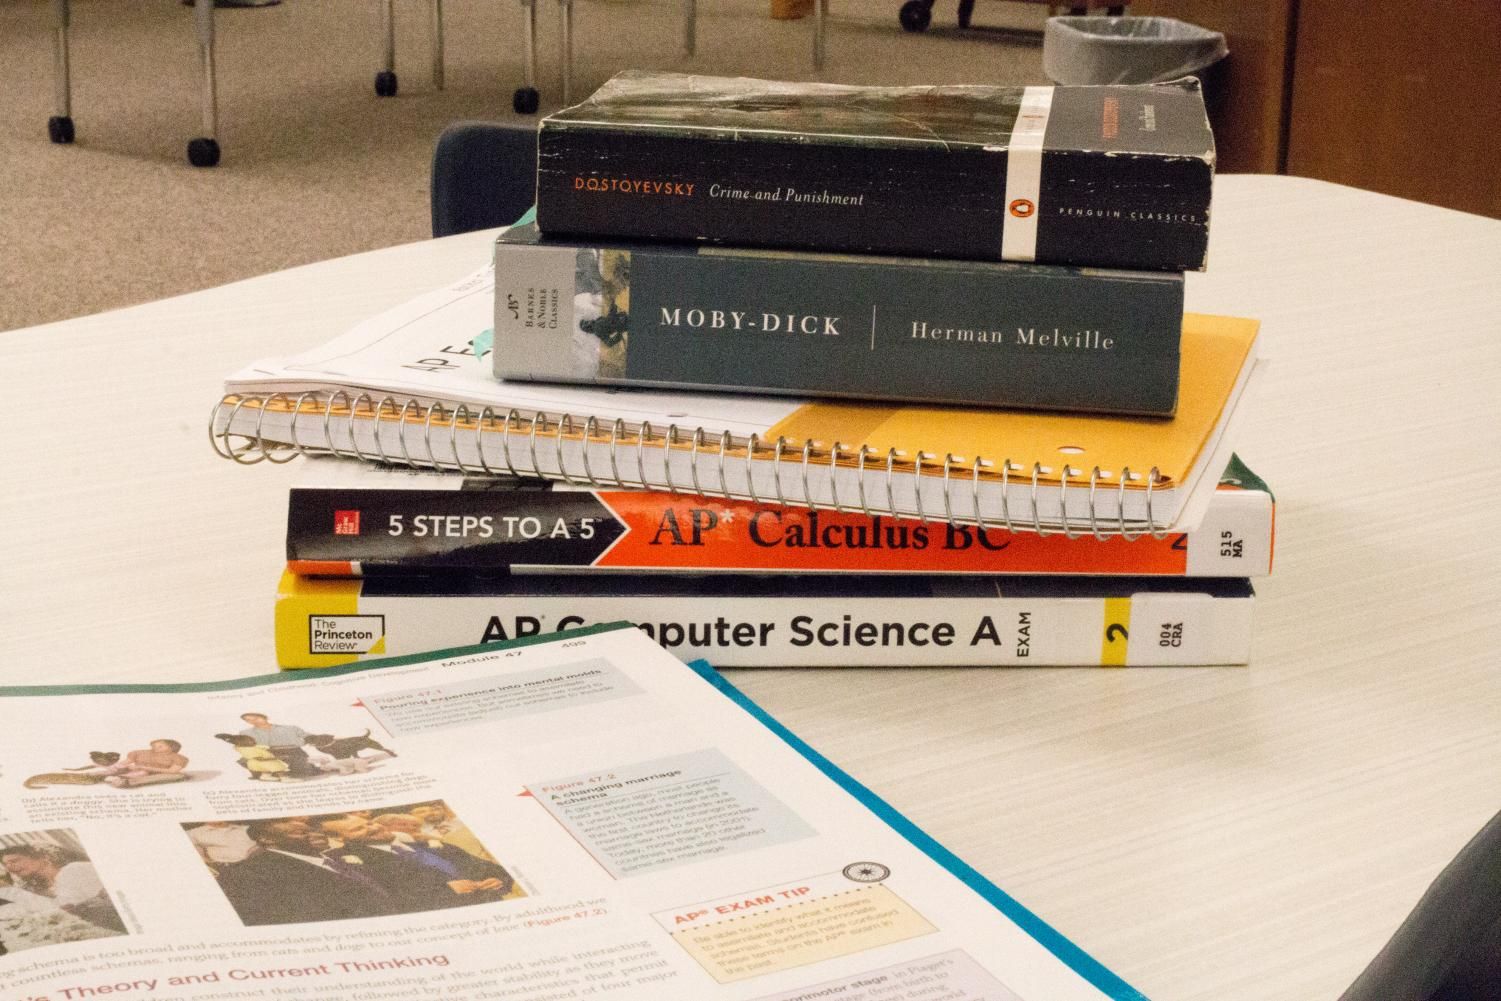 AP book open with other school materials stacked on a desk